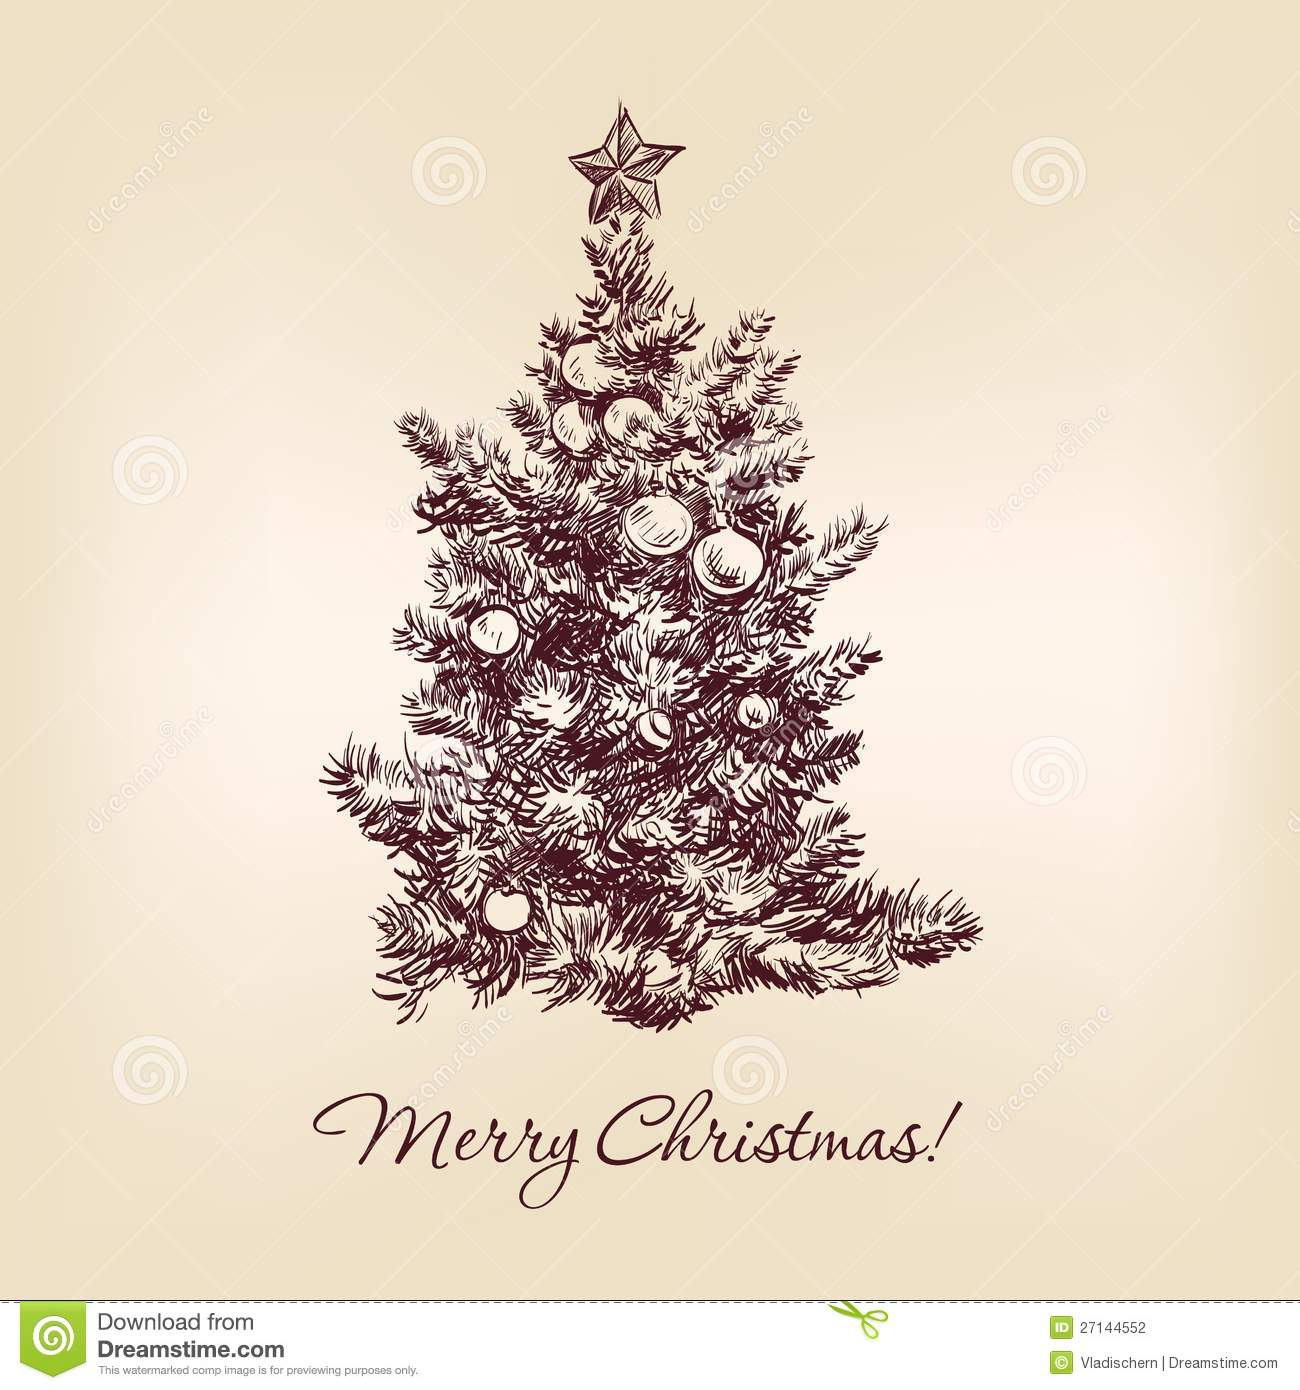 Christmas Tree Etching Stock Illustrations 690 Christmas Tree Etching Stock Illustrations Vectors Clipart Dreamstime